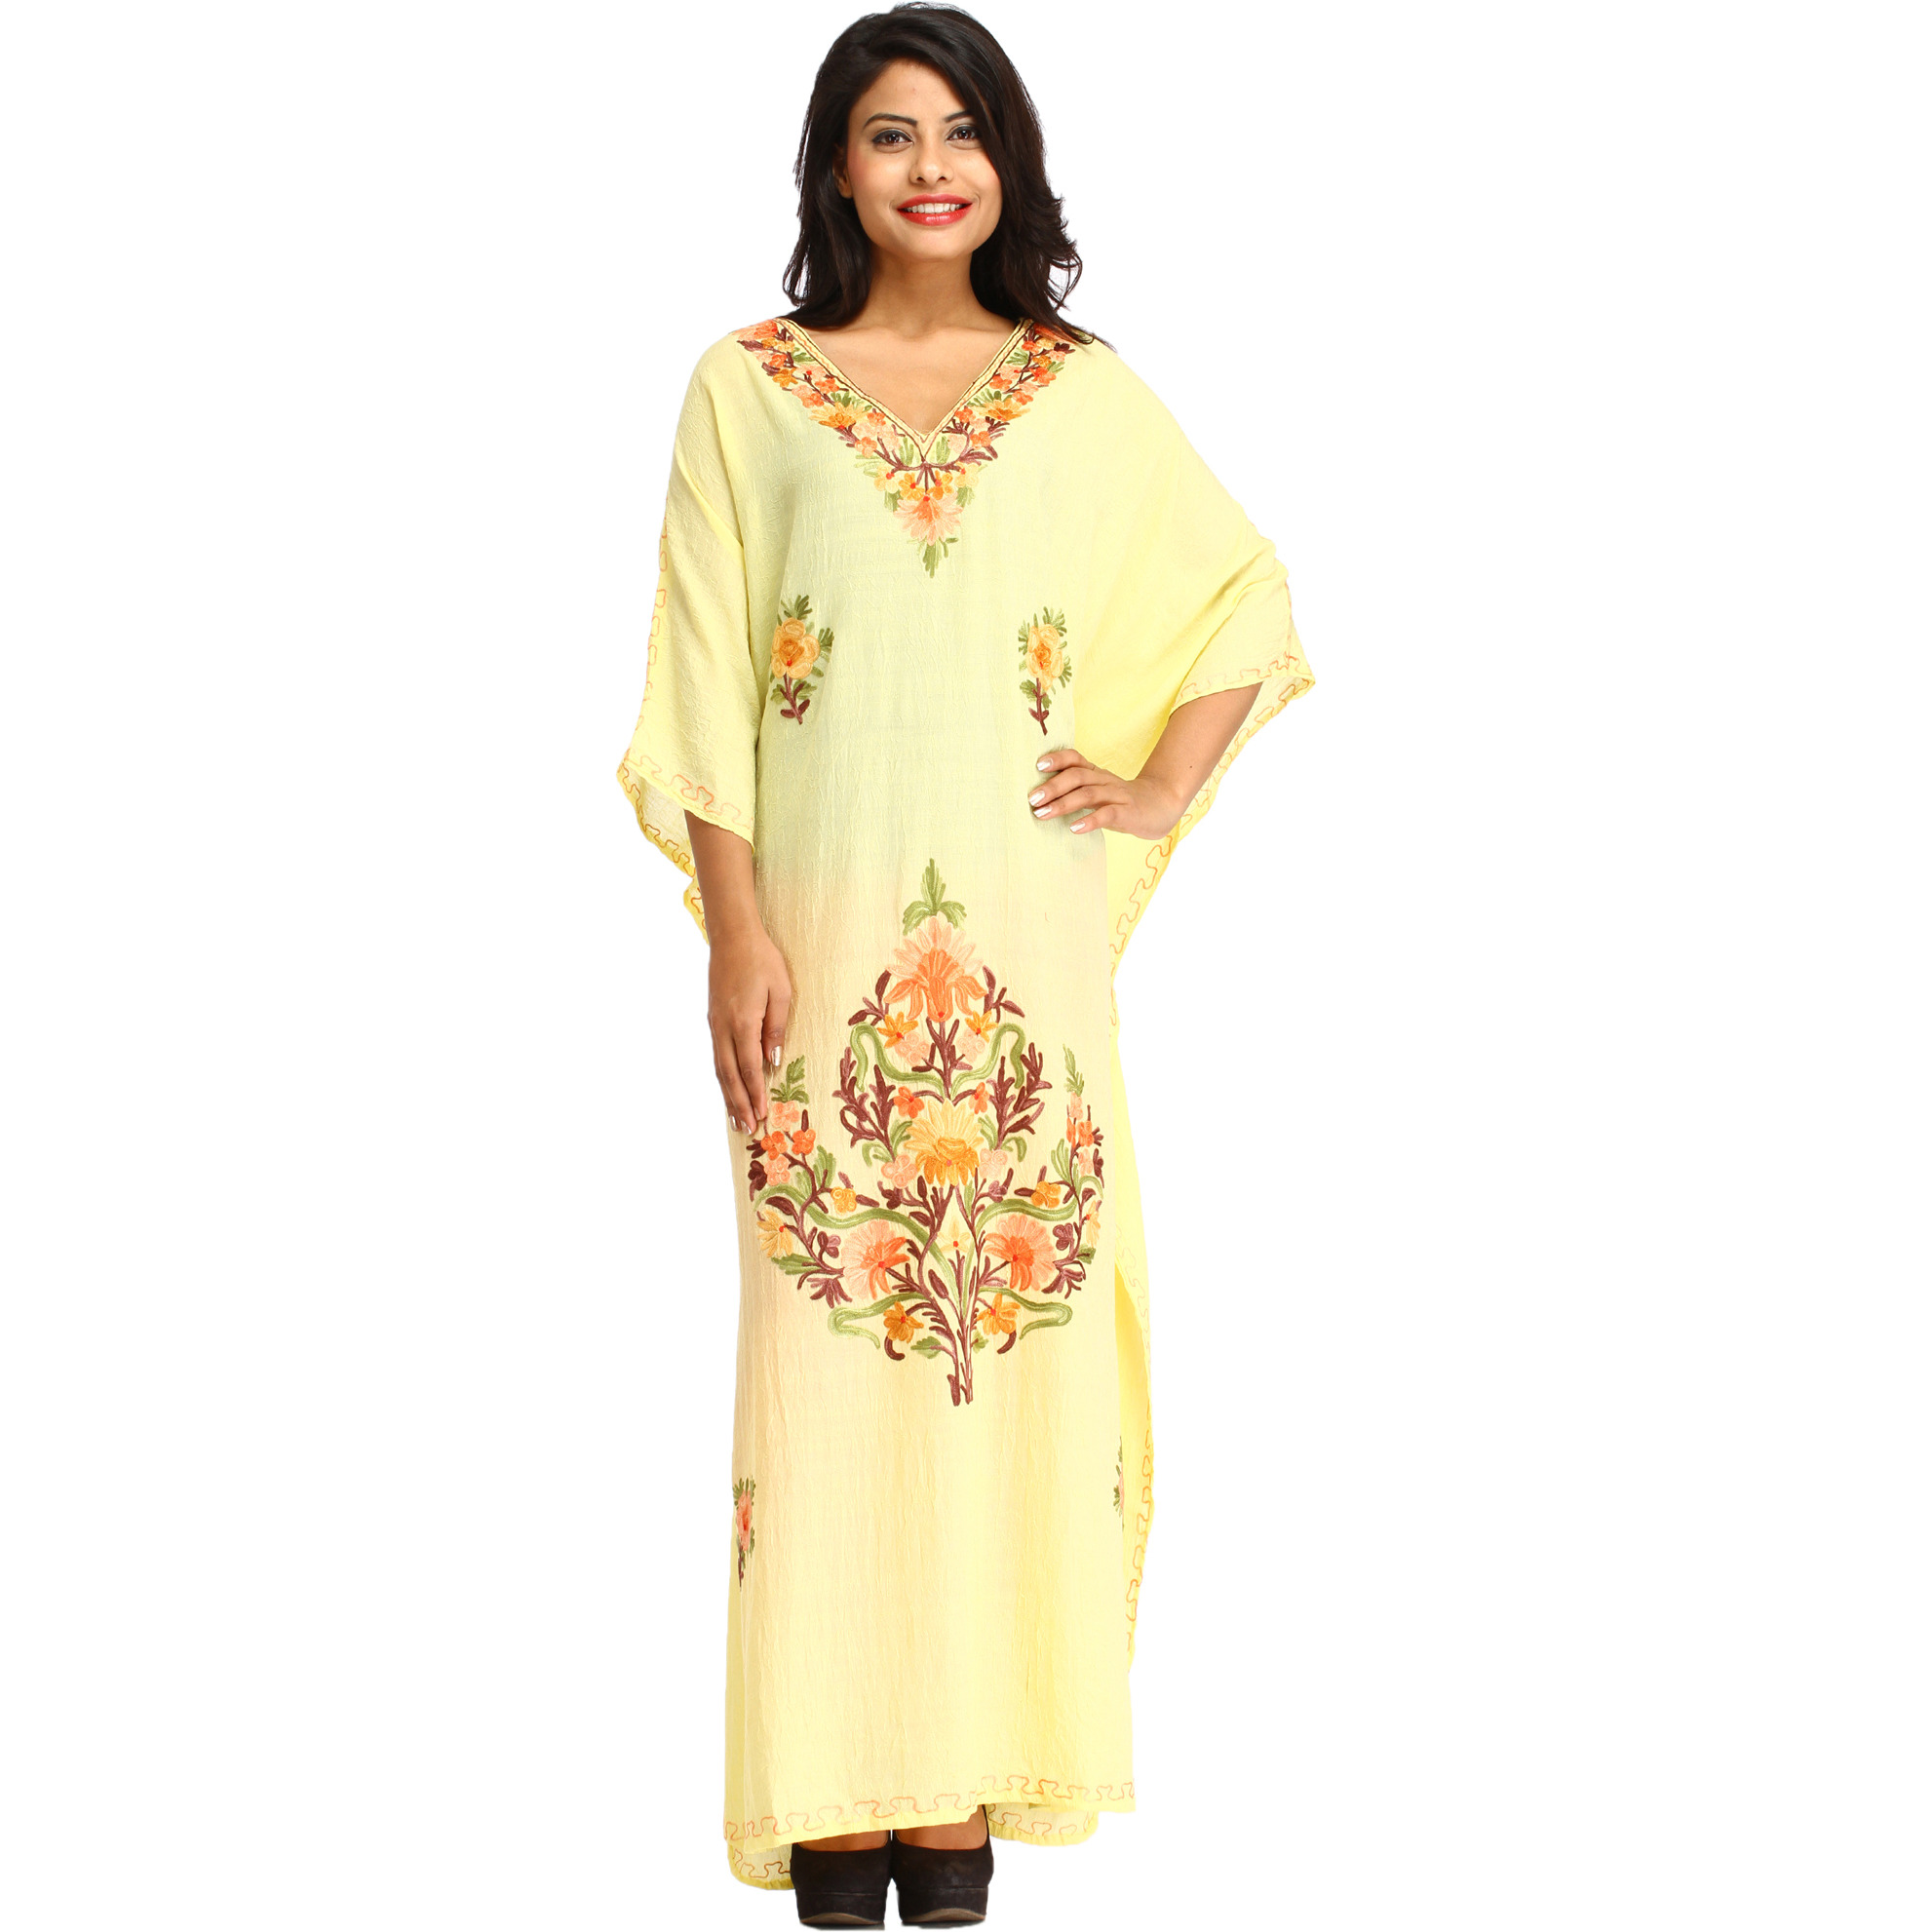 Wax-Yellow Kaftan from Kashmir with Ari-Embroidery